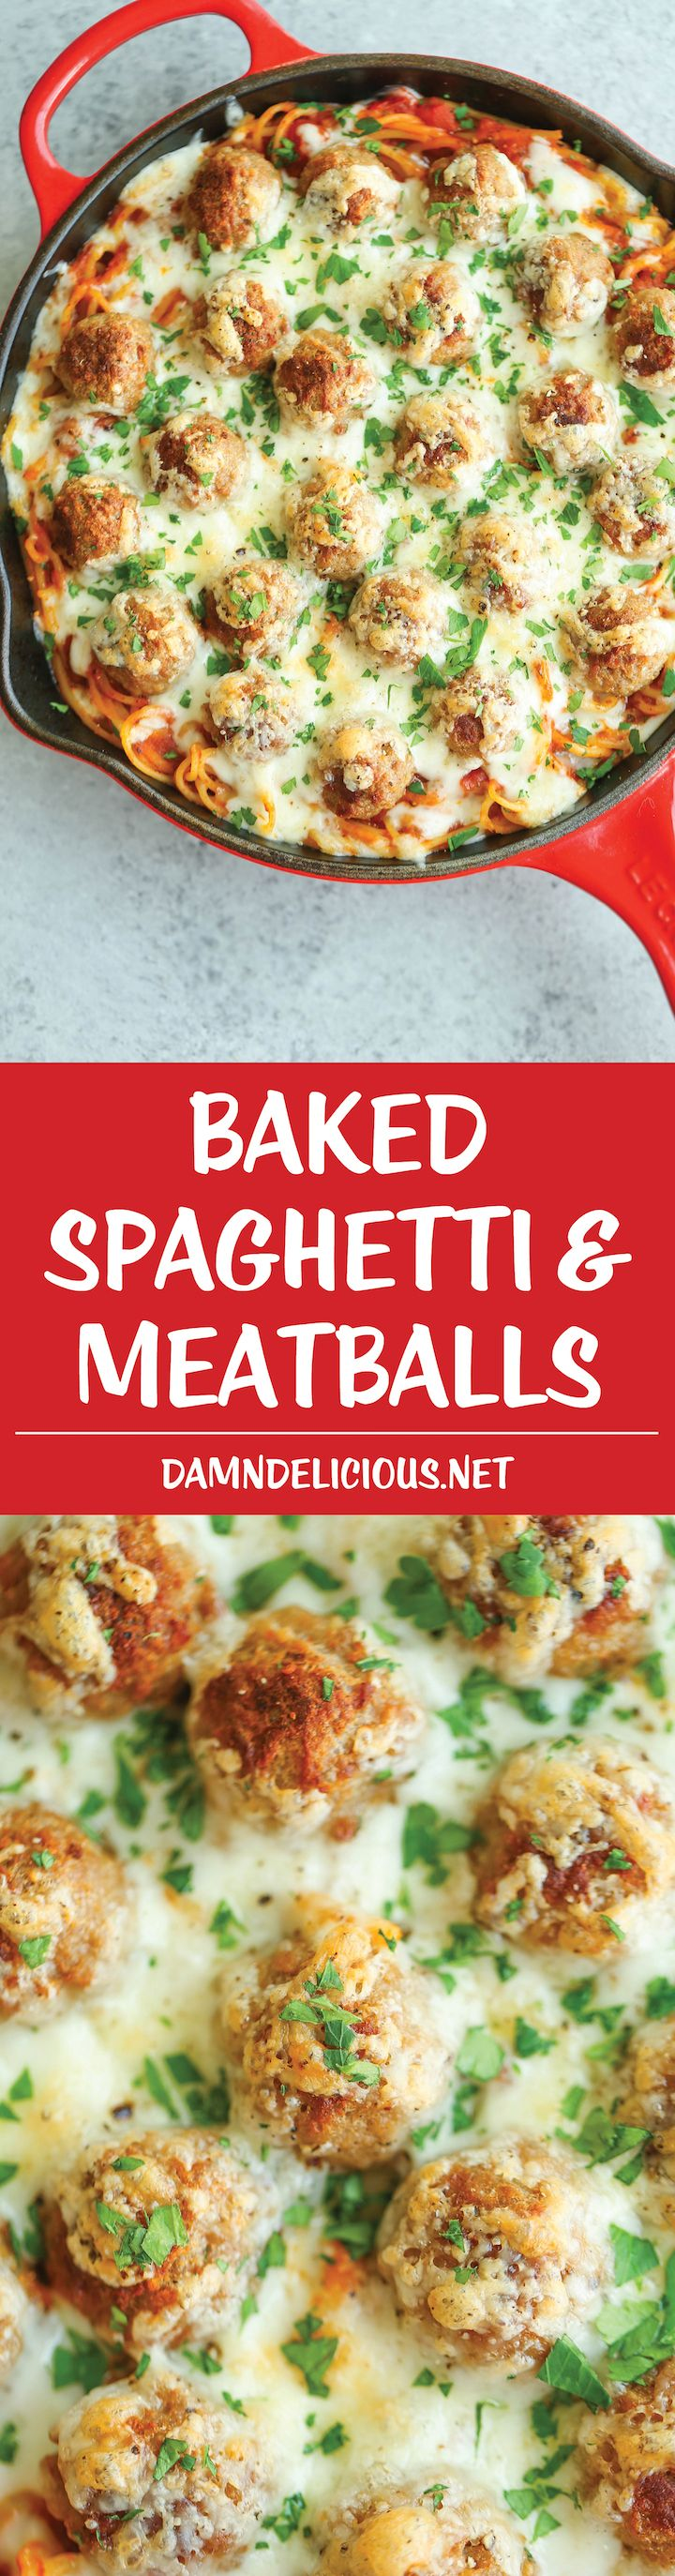 Baked Spaghetti and Meatballs - Traditional spaghetti and meatballs is turned into the most amazing baked cheesy casserole ever! A family favorite for sure!